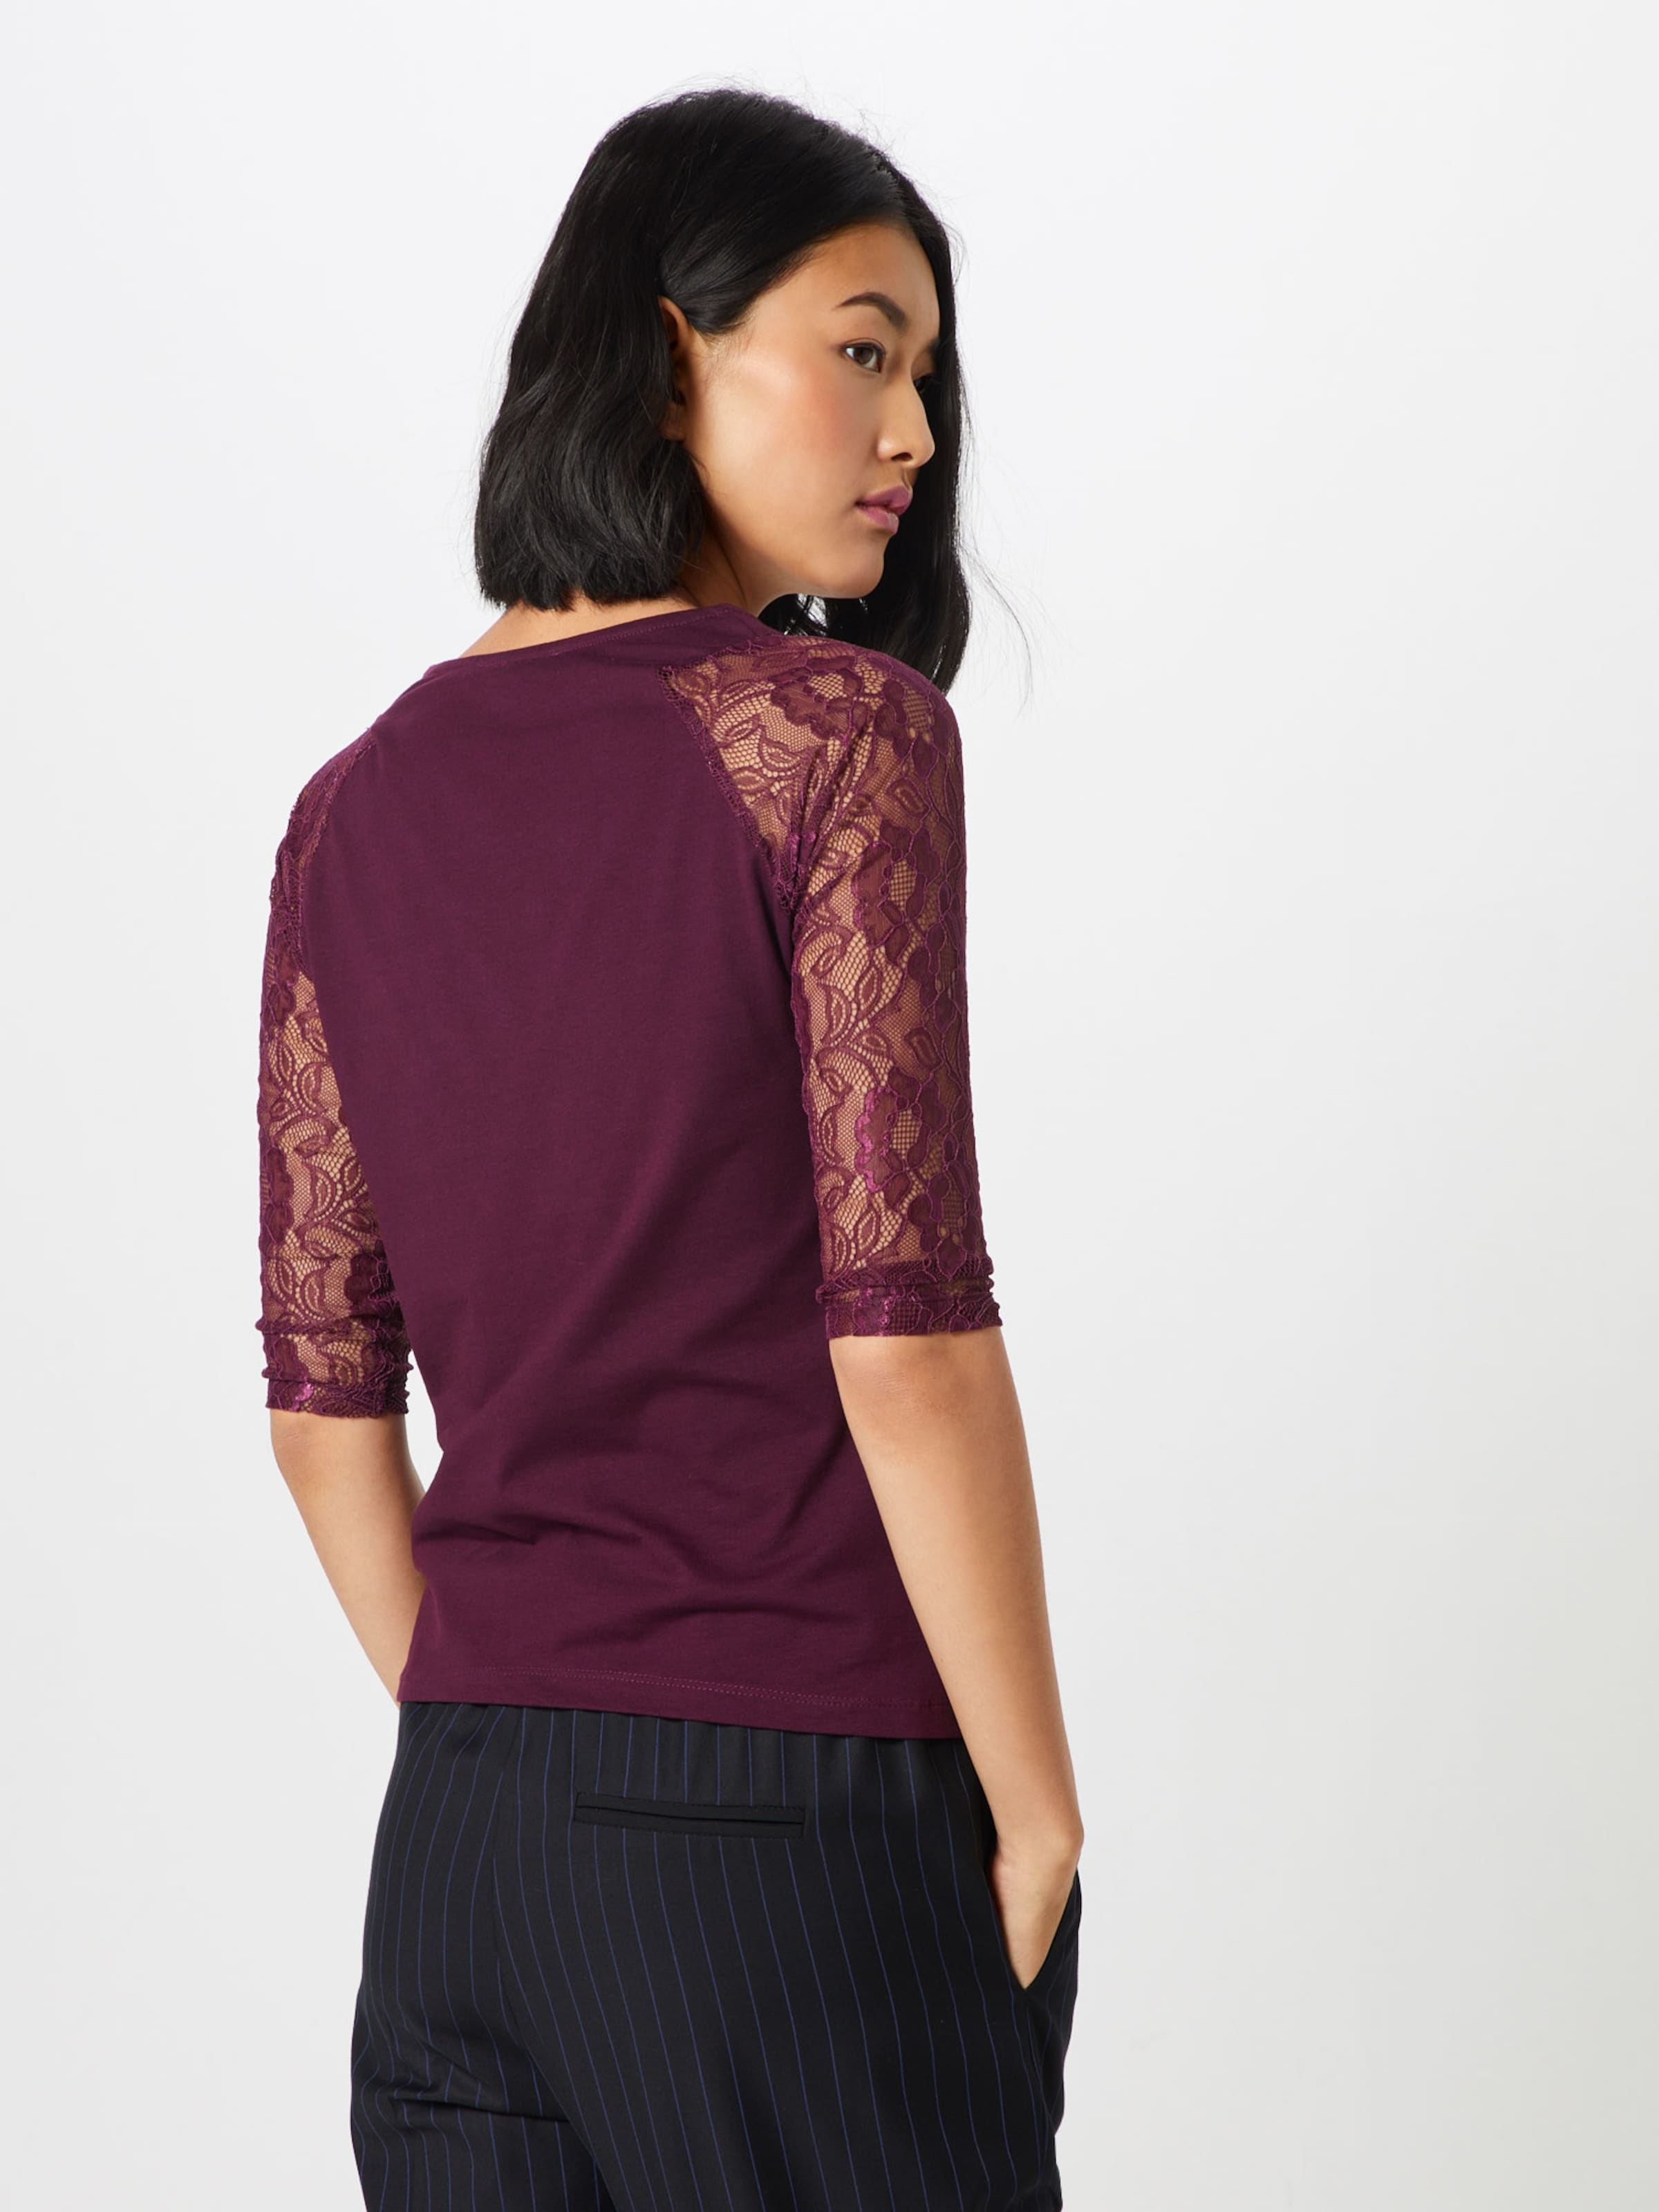 You Beere Shirt 'evelyn' In About L5jR4A